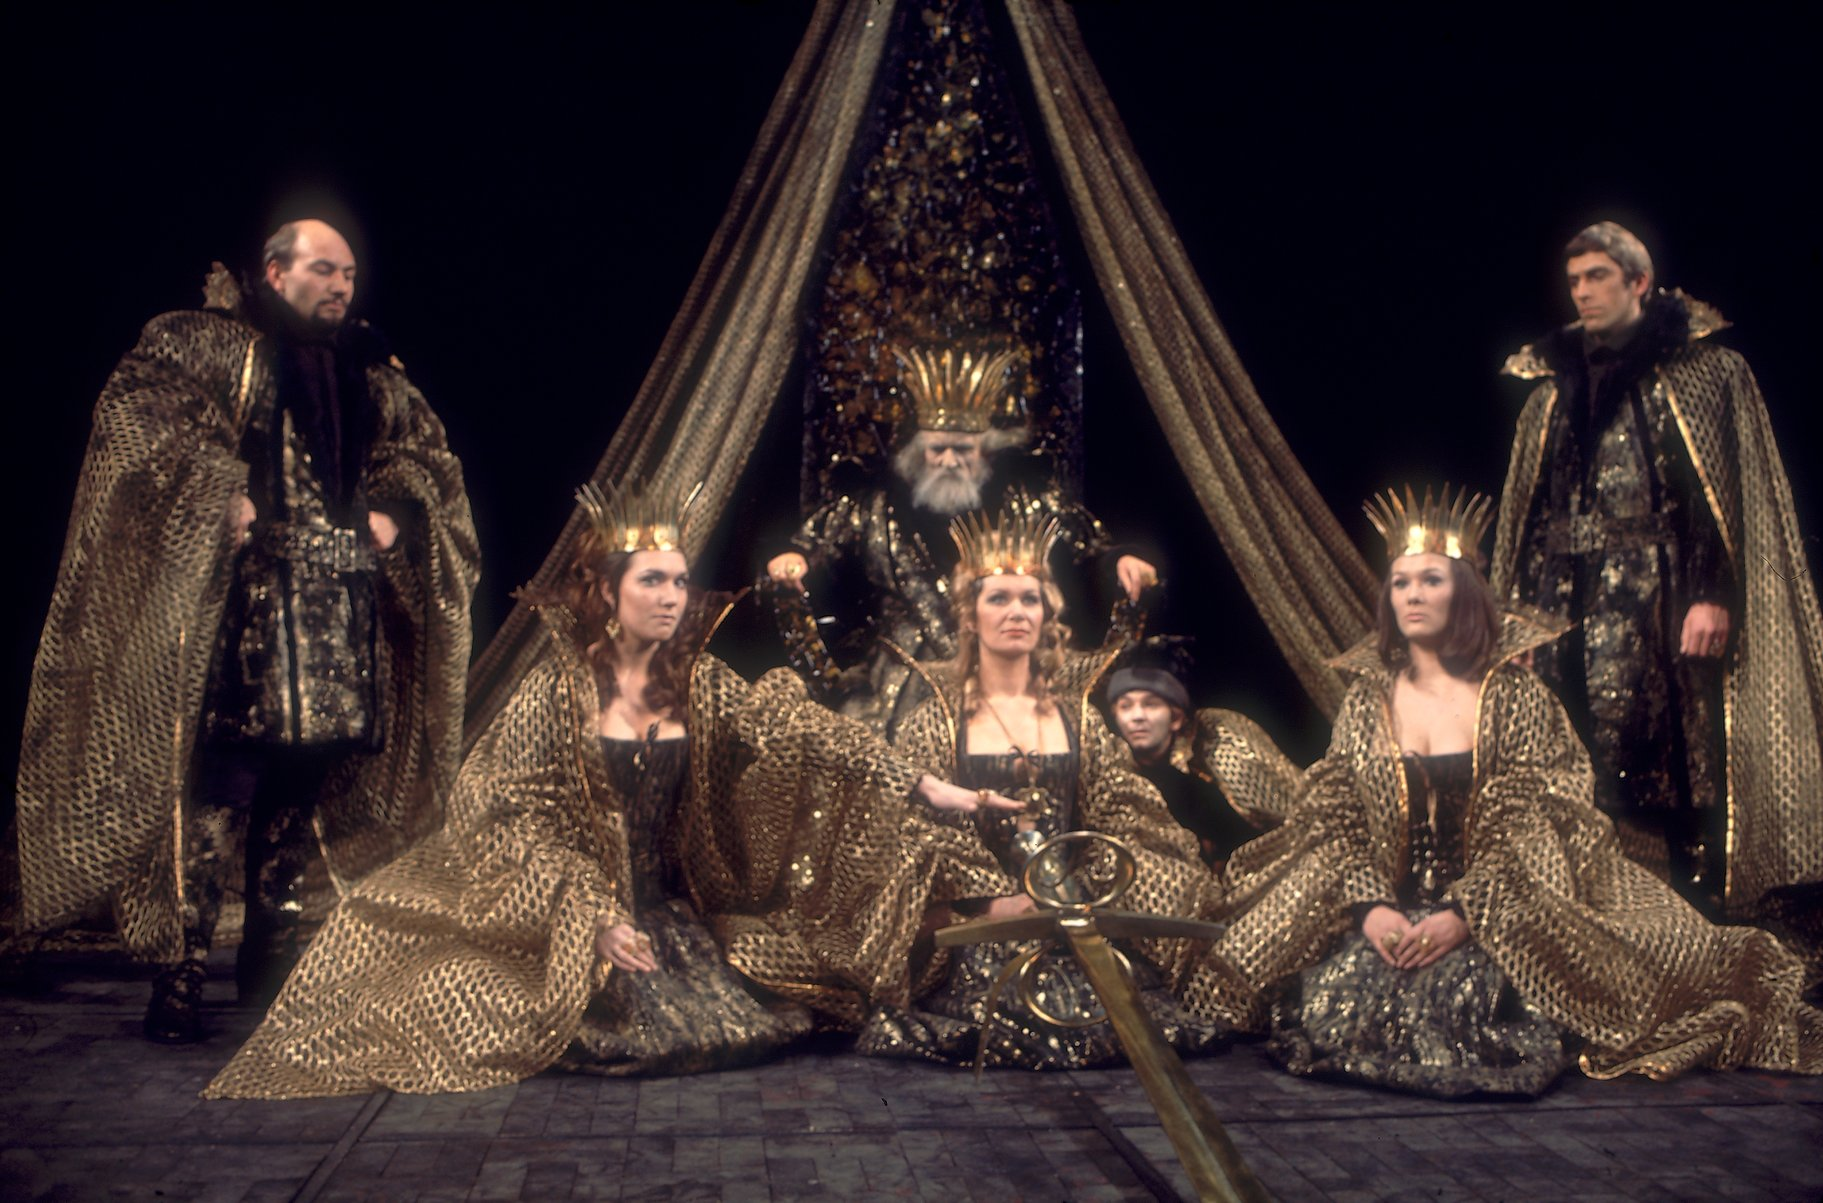 Three women in gold sit in front of a king on his throne.